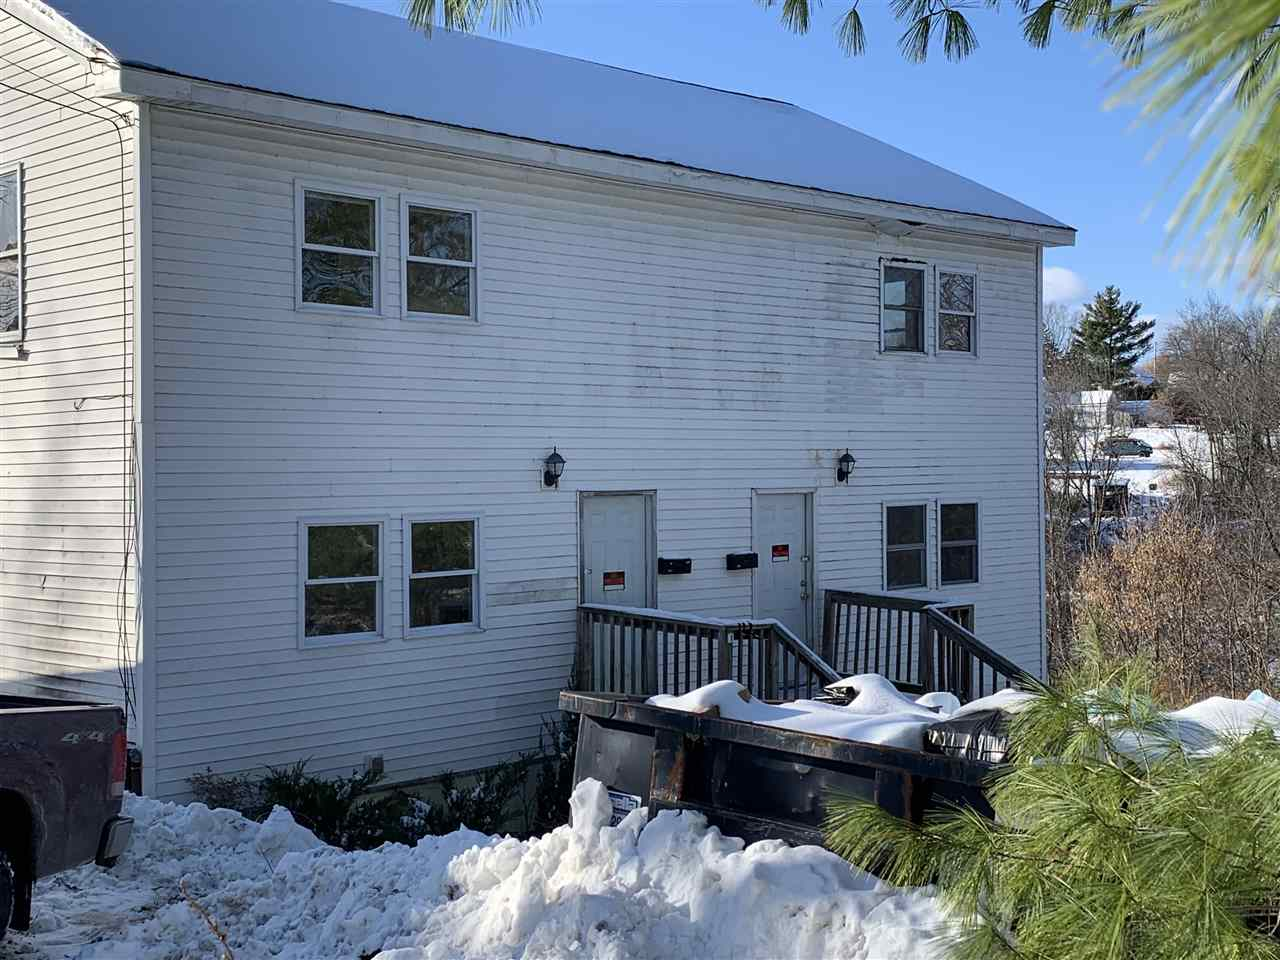 Attention investors!  Looking for a winter project?  Located just a couple minute walk from Main St in Downtown Vergennes, this conveniently located side by side duplex constructed in 2008, sits on a 1 acre lot that is loaded with opportunity and ready for your vision!  Both units are identical and have a very attractive floor plan that includes spacious living rooms, dining and kitchen areas including 3/4 baths on the first floor.  Upstairs in both units are decent sized bedrooms with ample closet space and large full baths with tile flooring and separate linen closets.  Each unit also has separate basement interior and exterior access with laundry hookups.  Both spaces could easily be converted into even more living space or simply keep as storage.  There is also the added convenience of a detached two car garage for use by both dwellings.  Whether you are an investor looking to rehab the property or want to fix it up to live in one half and rent out the other, the possibilities are seemingly endless not to mention the income producing potential this property has to offer!